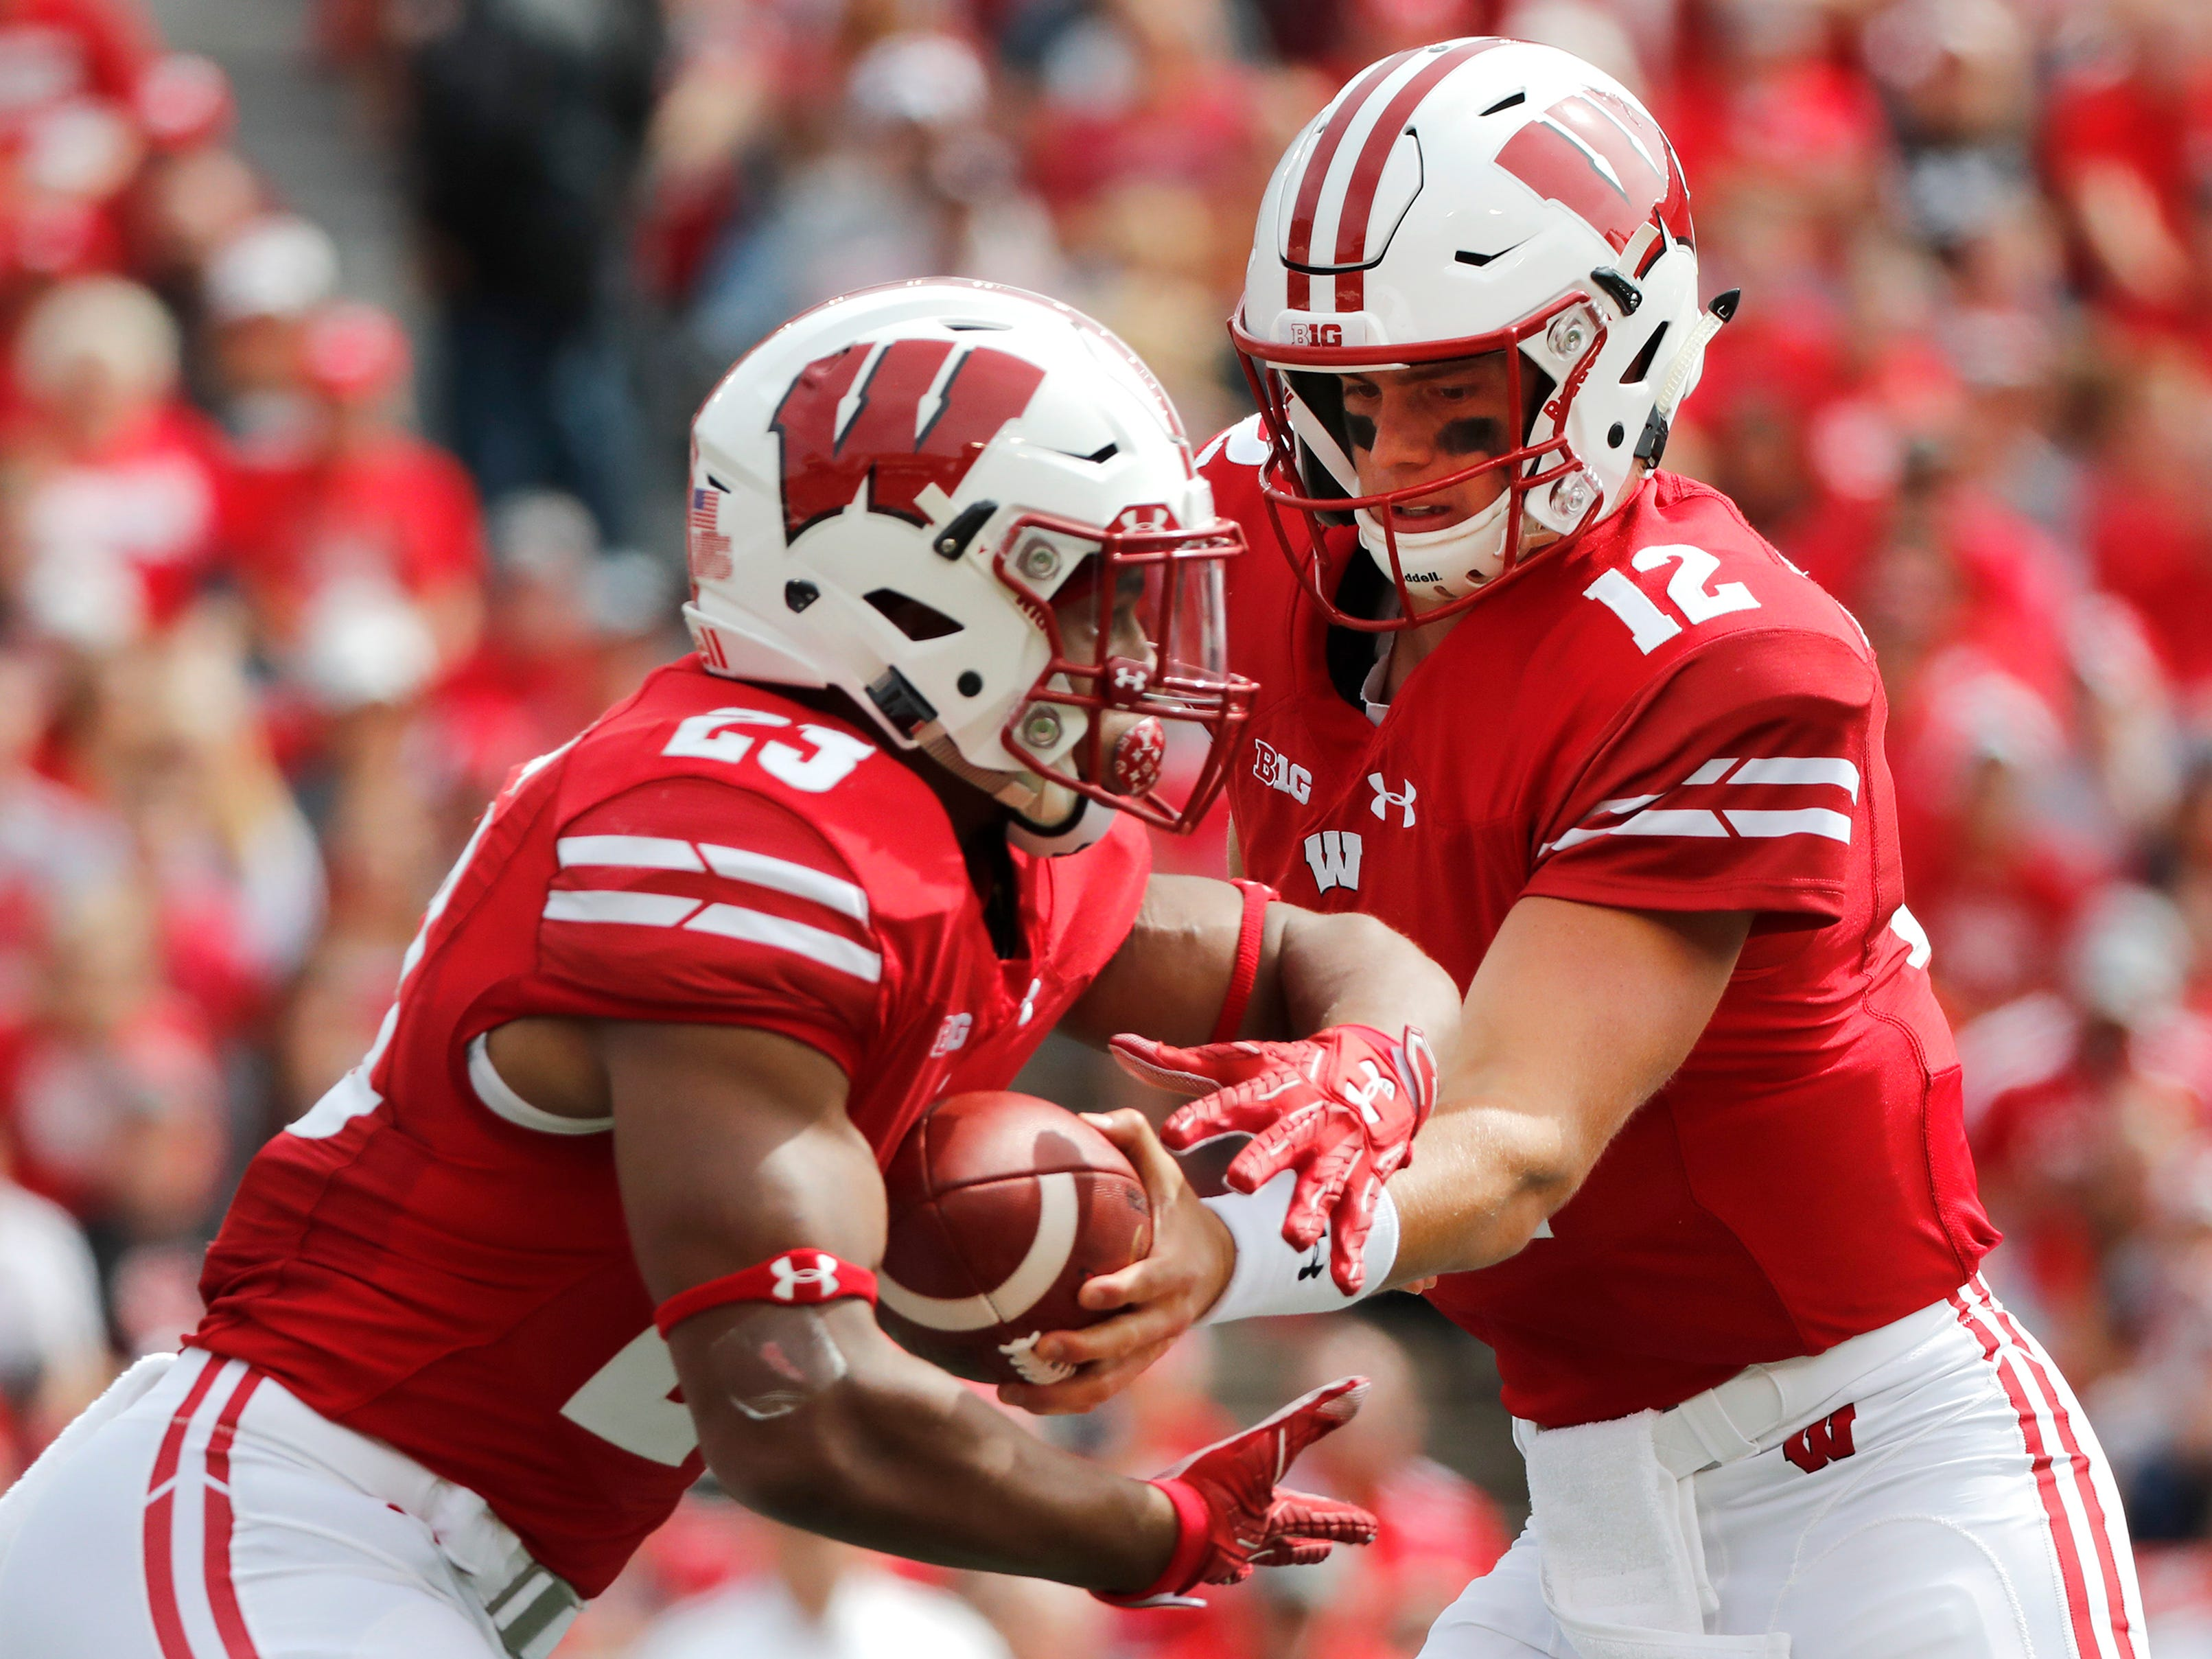 Wisconsin running back Jonathan Taylor recieves the handoff from Wisconsin quarterback Alex Hornibrook. Taylor carried the ball 33 times.